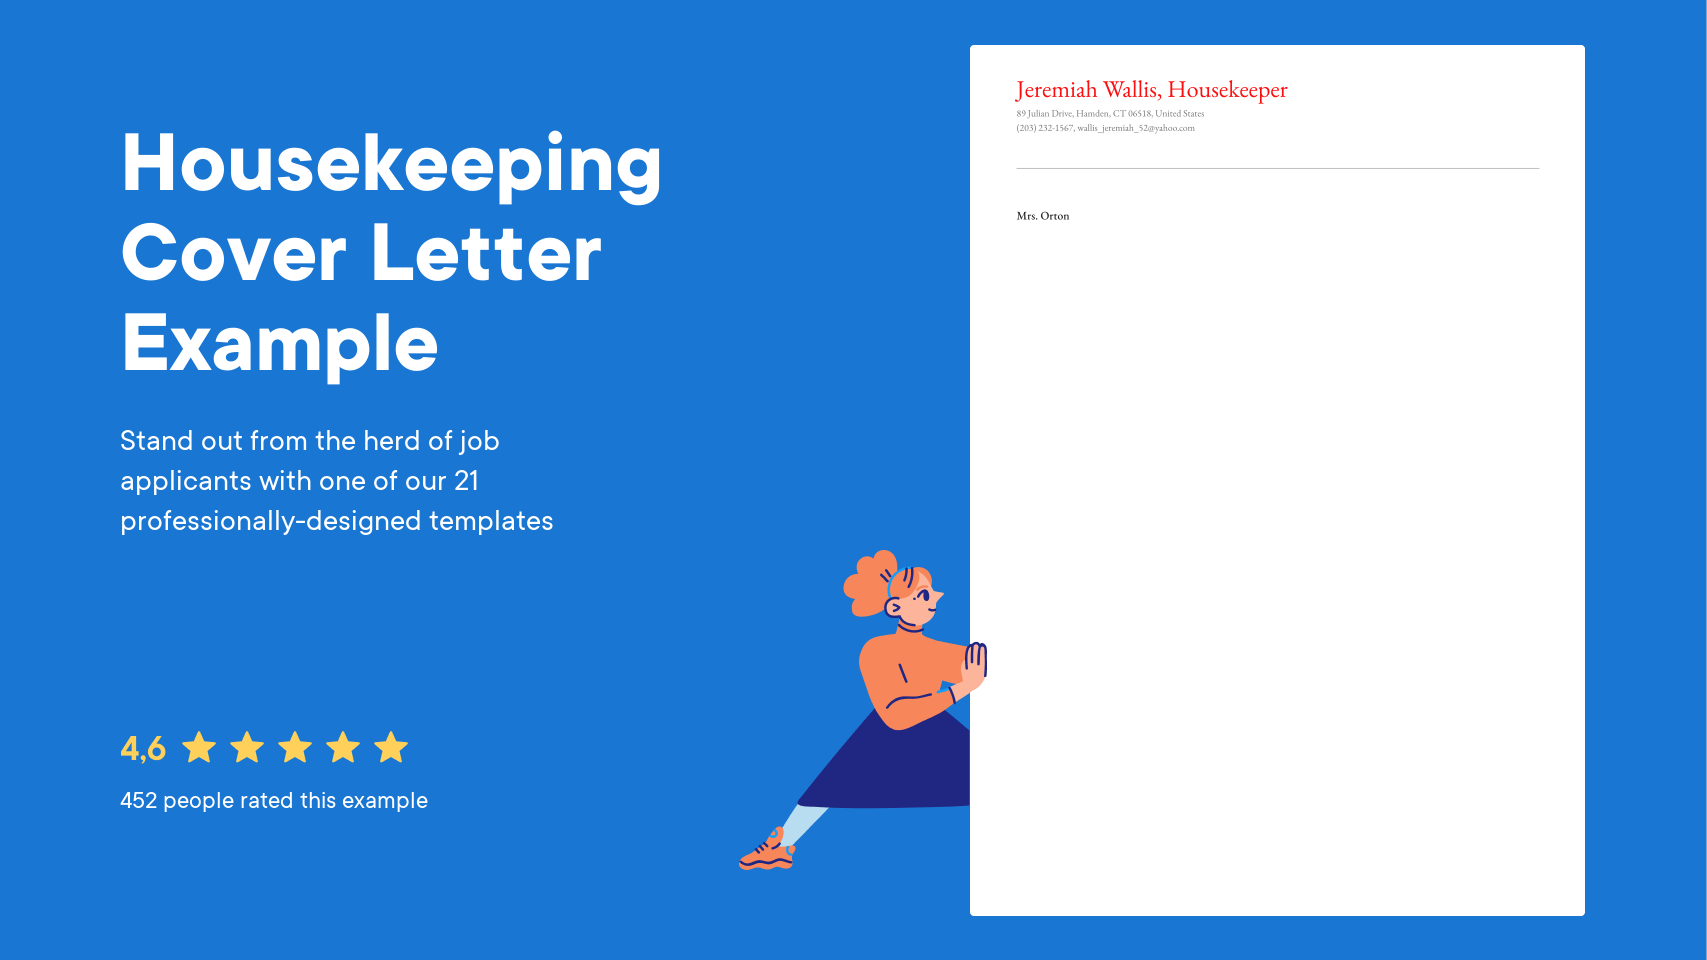 Housekeeping Cover Letter Examples Expert Tips Free Resume Io